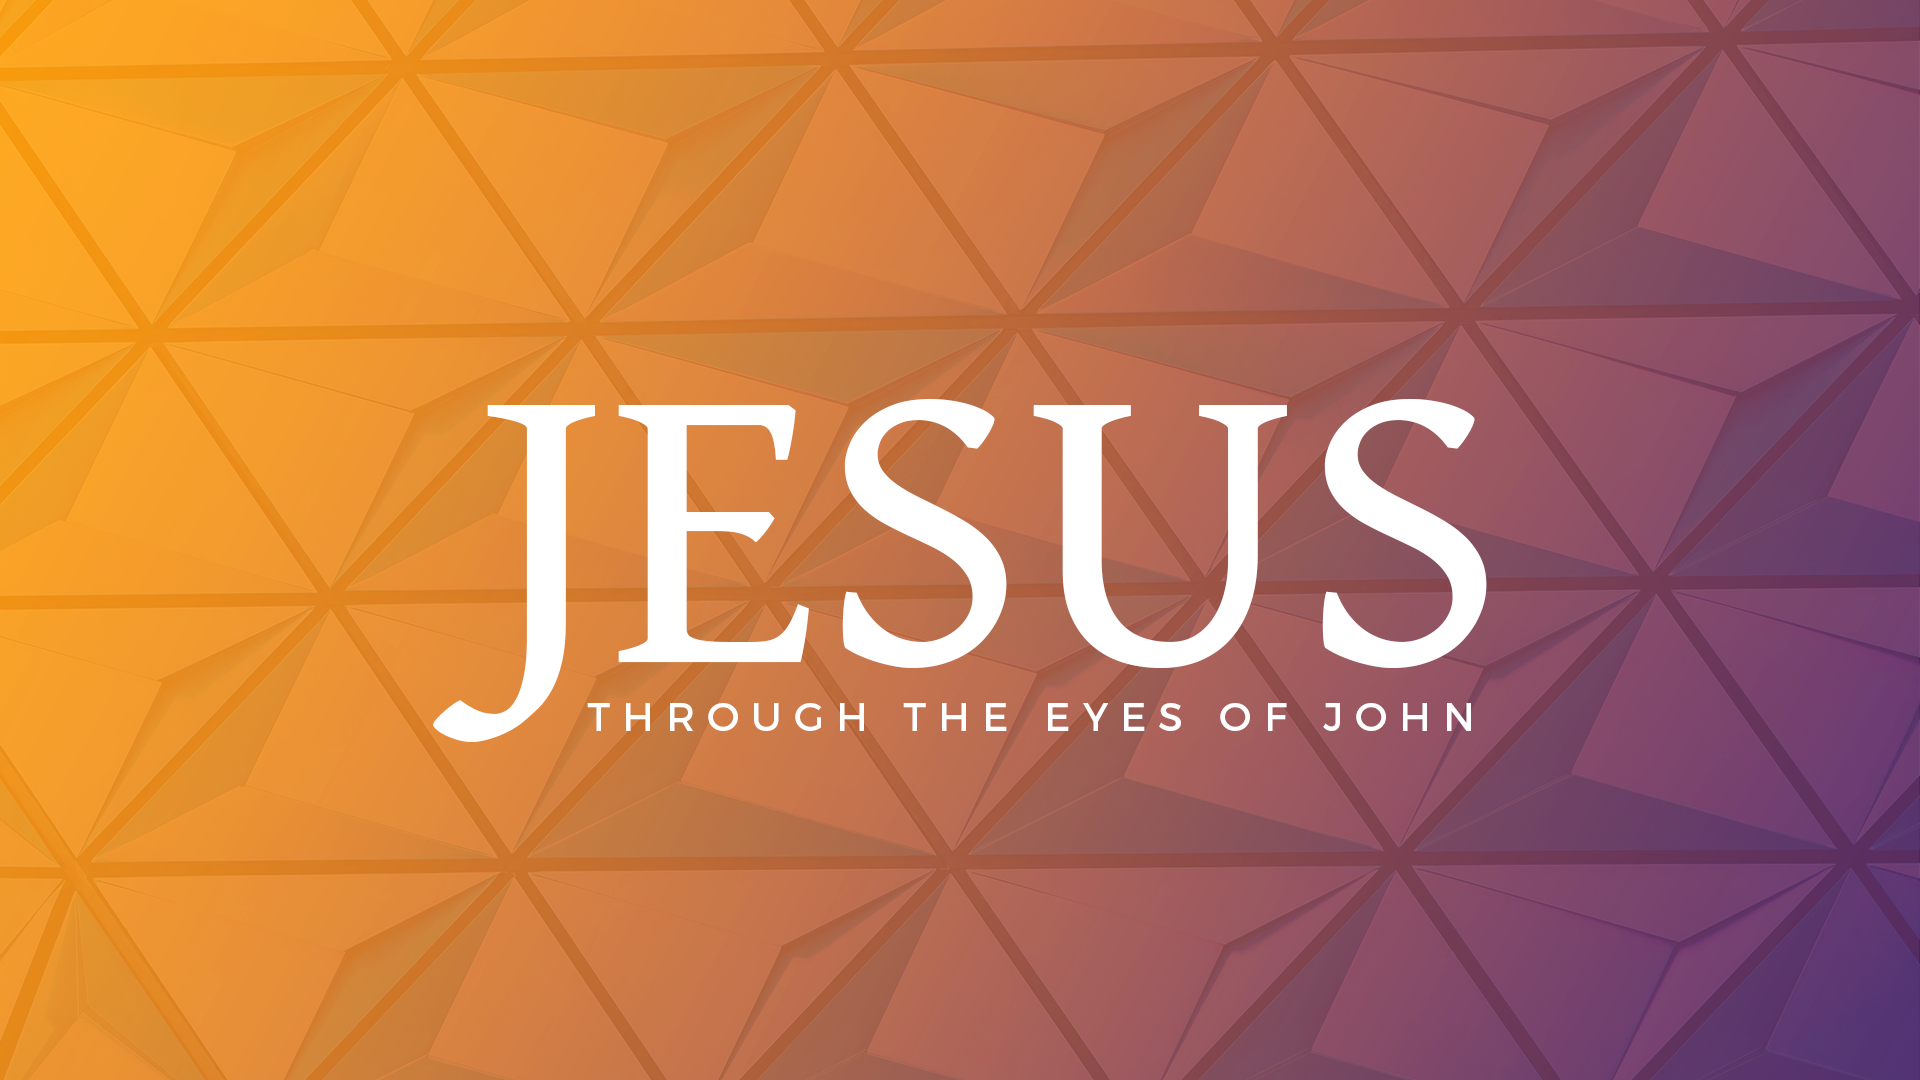 Jesus-Through the Eyes of John II